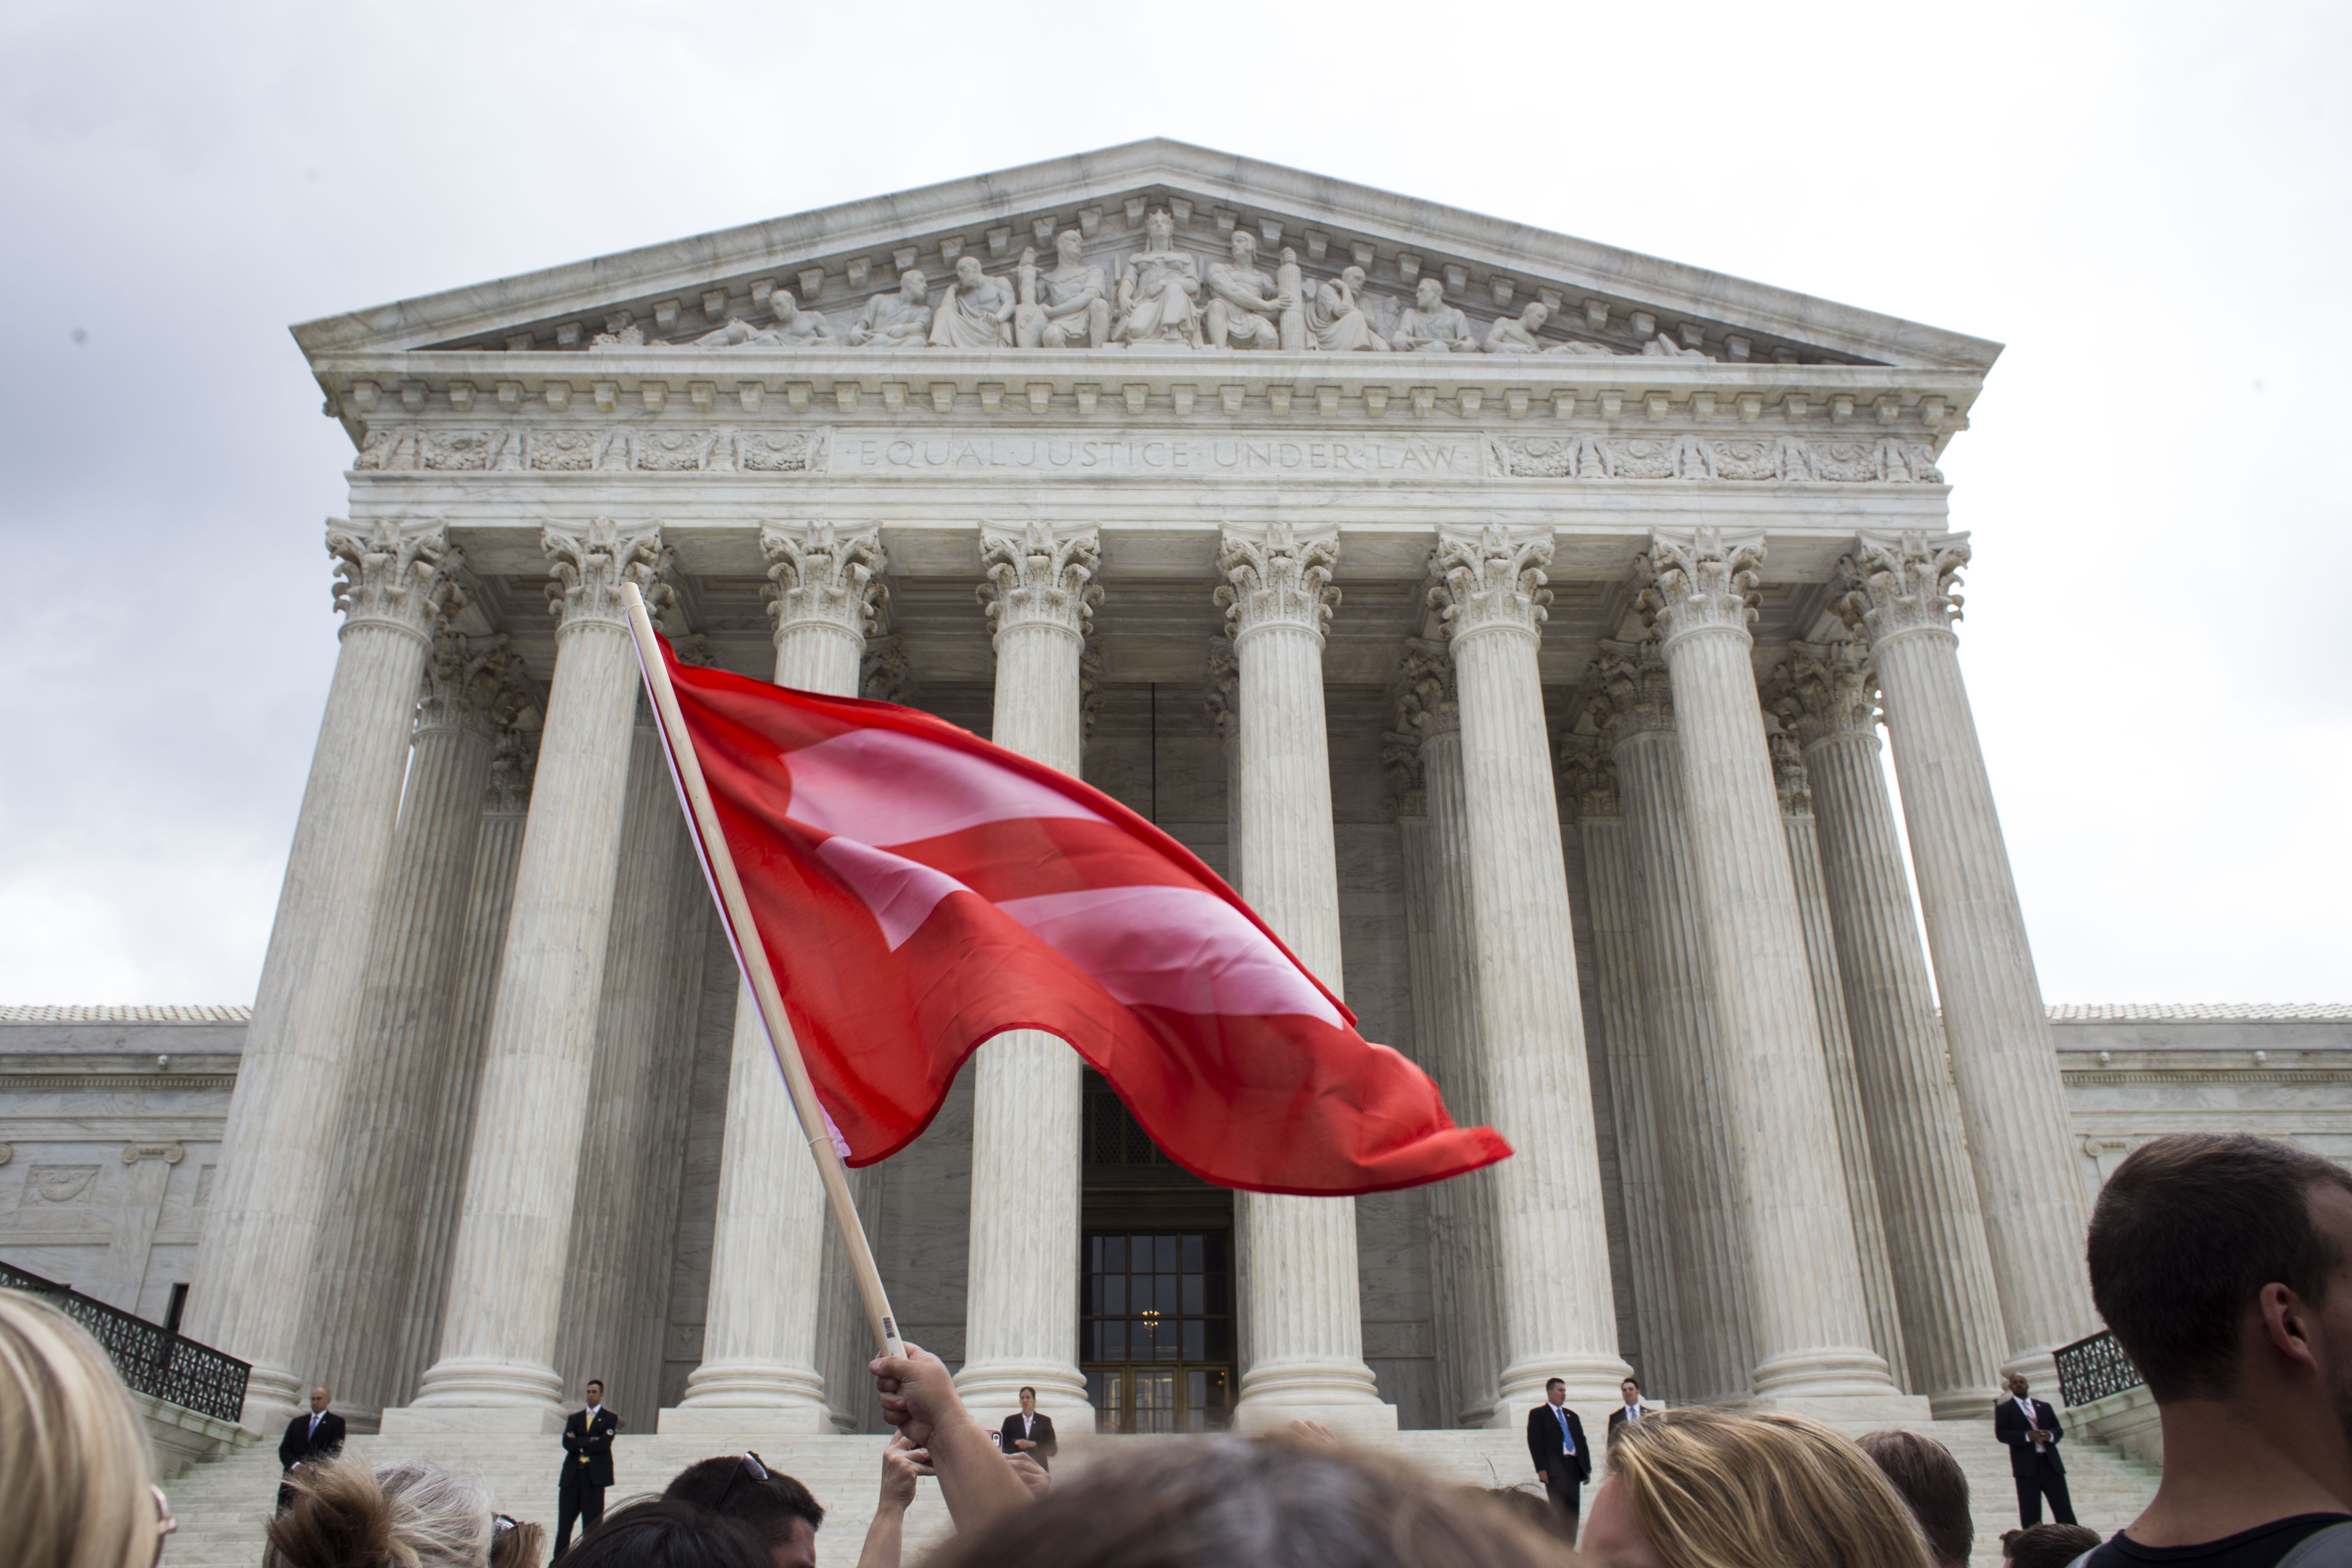 A man waves a marriage equality flag in front of The Supreme Court following the decision in favor of same-sex marriage in Washington, DC, on June 26, 2015.